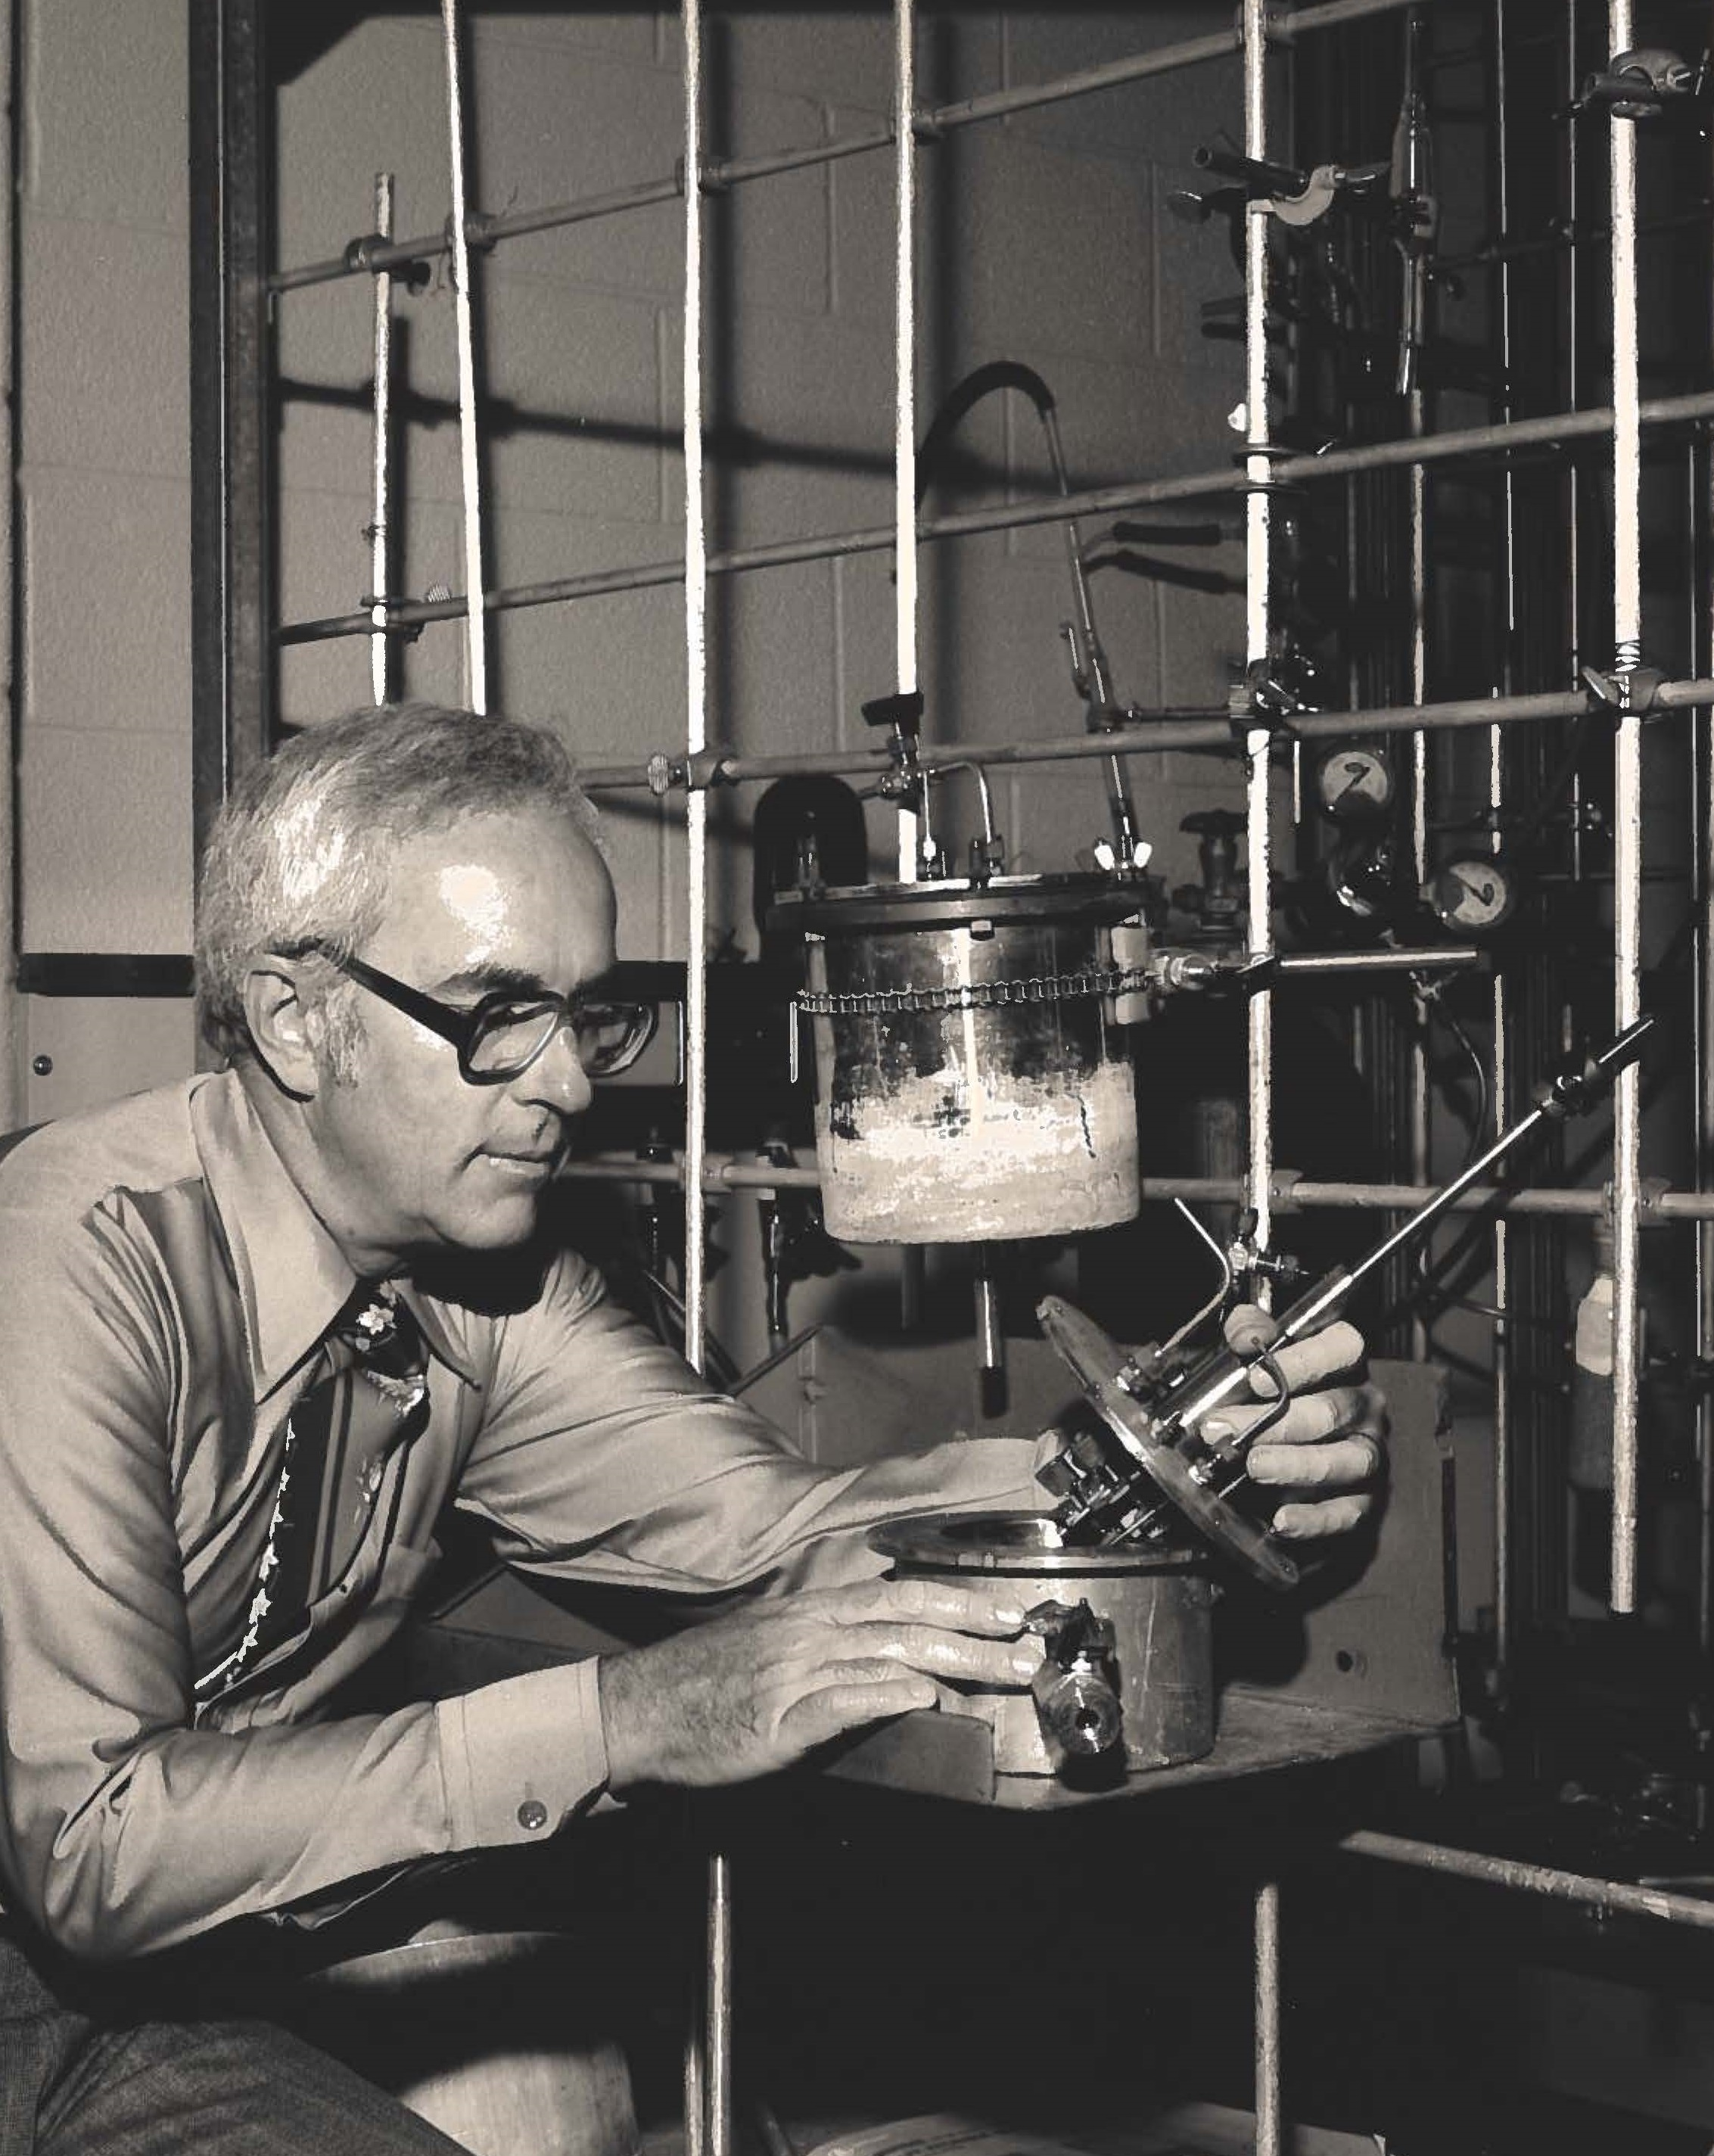 Ken O'Driscoll working in the Polymer Synthesis Lab, in the early eighties.